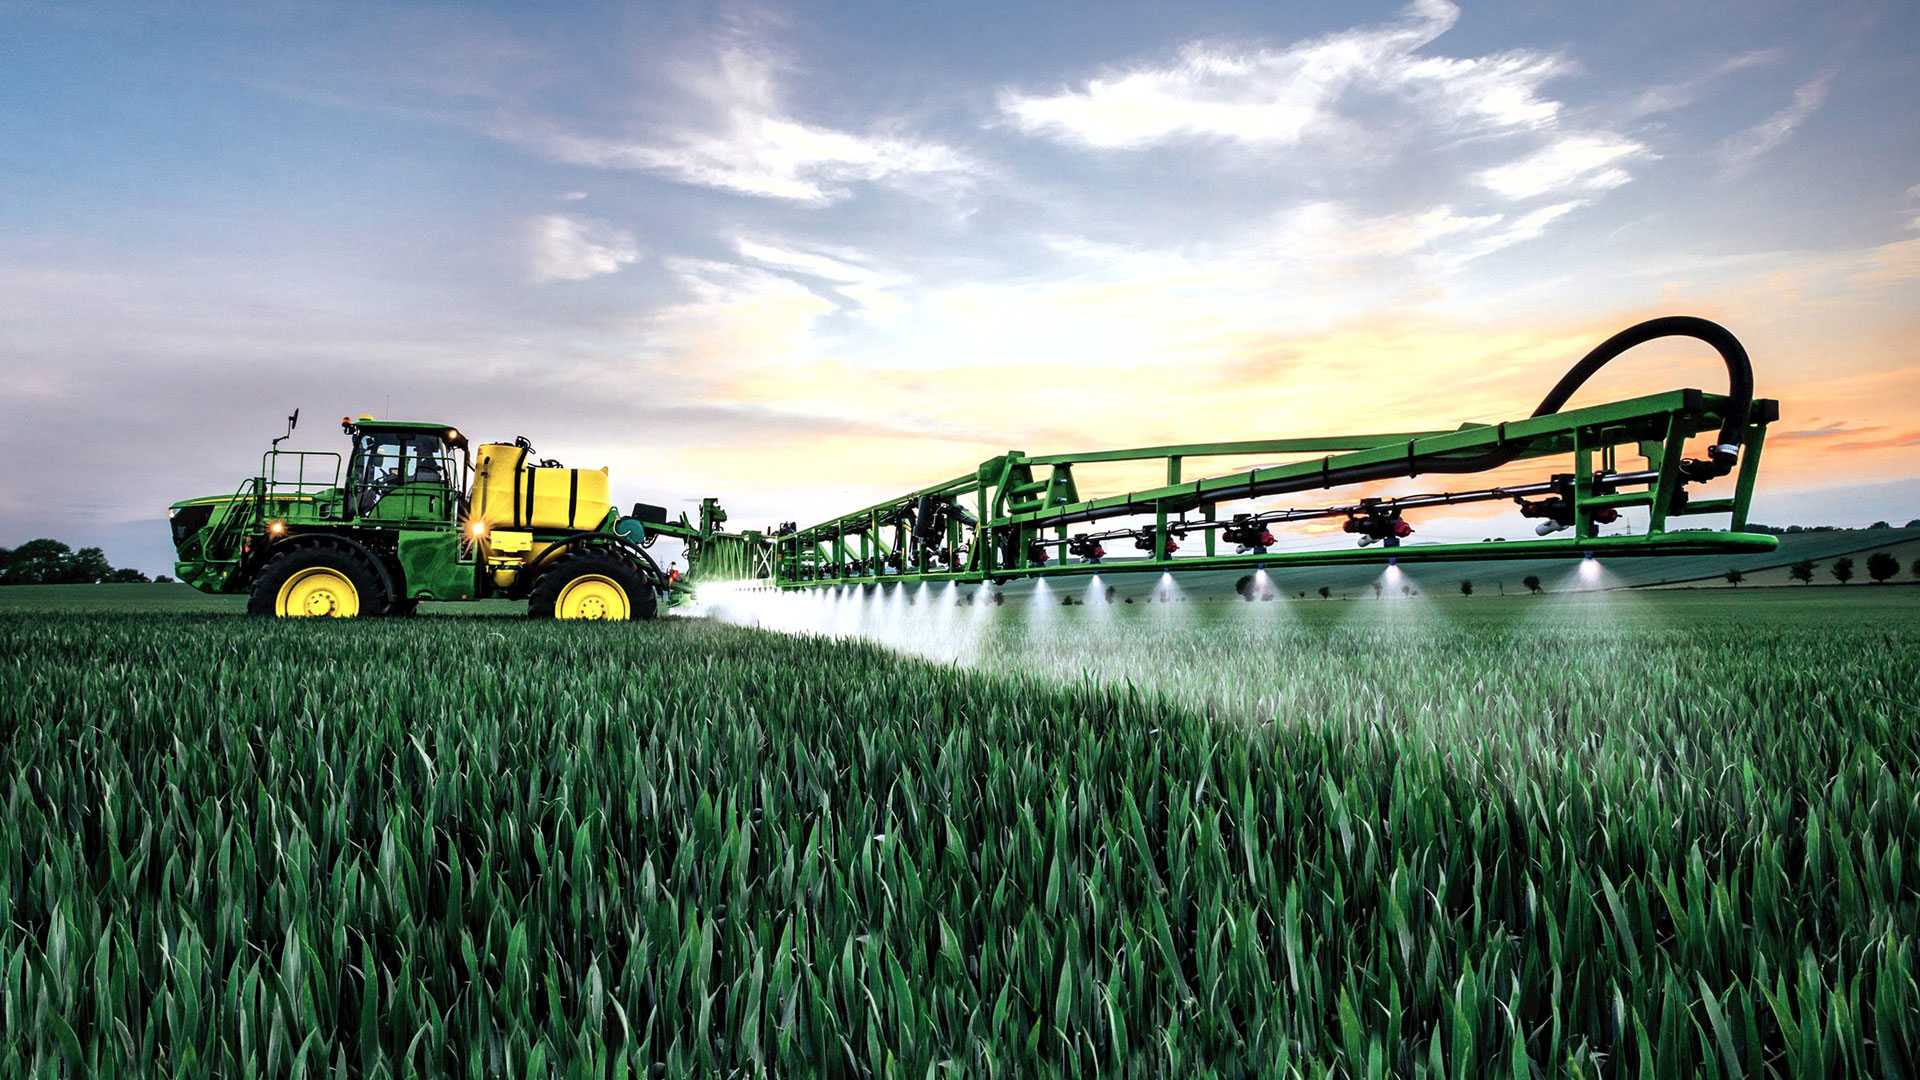 image of sprayer in a field